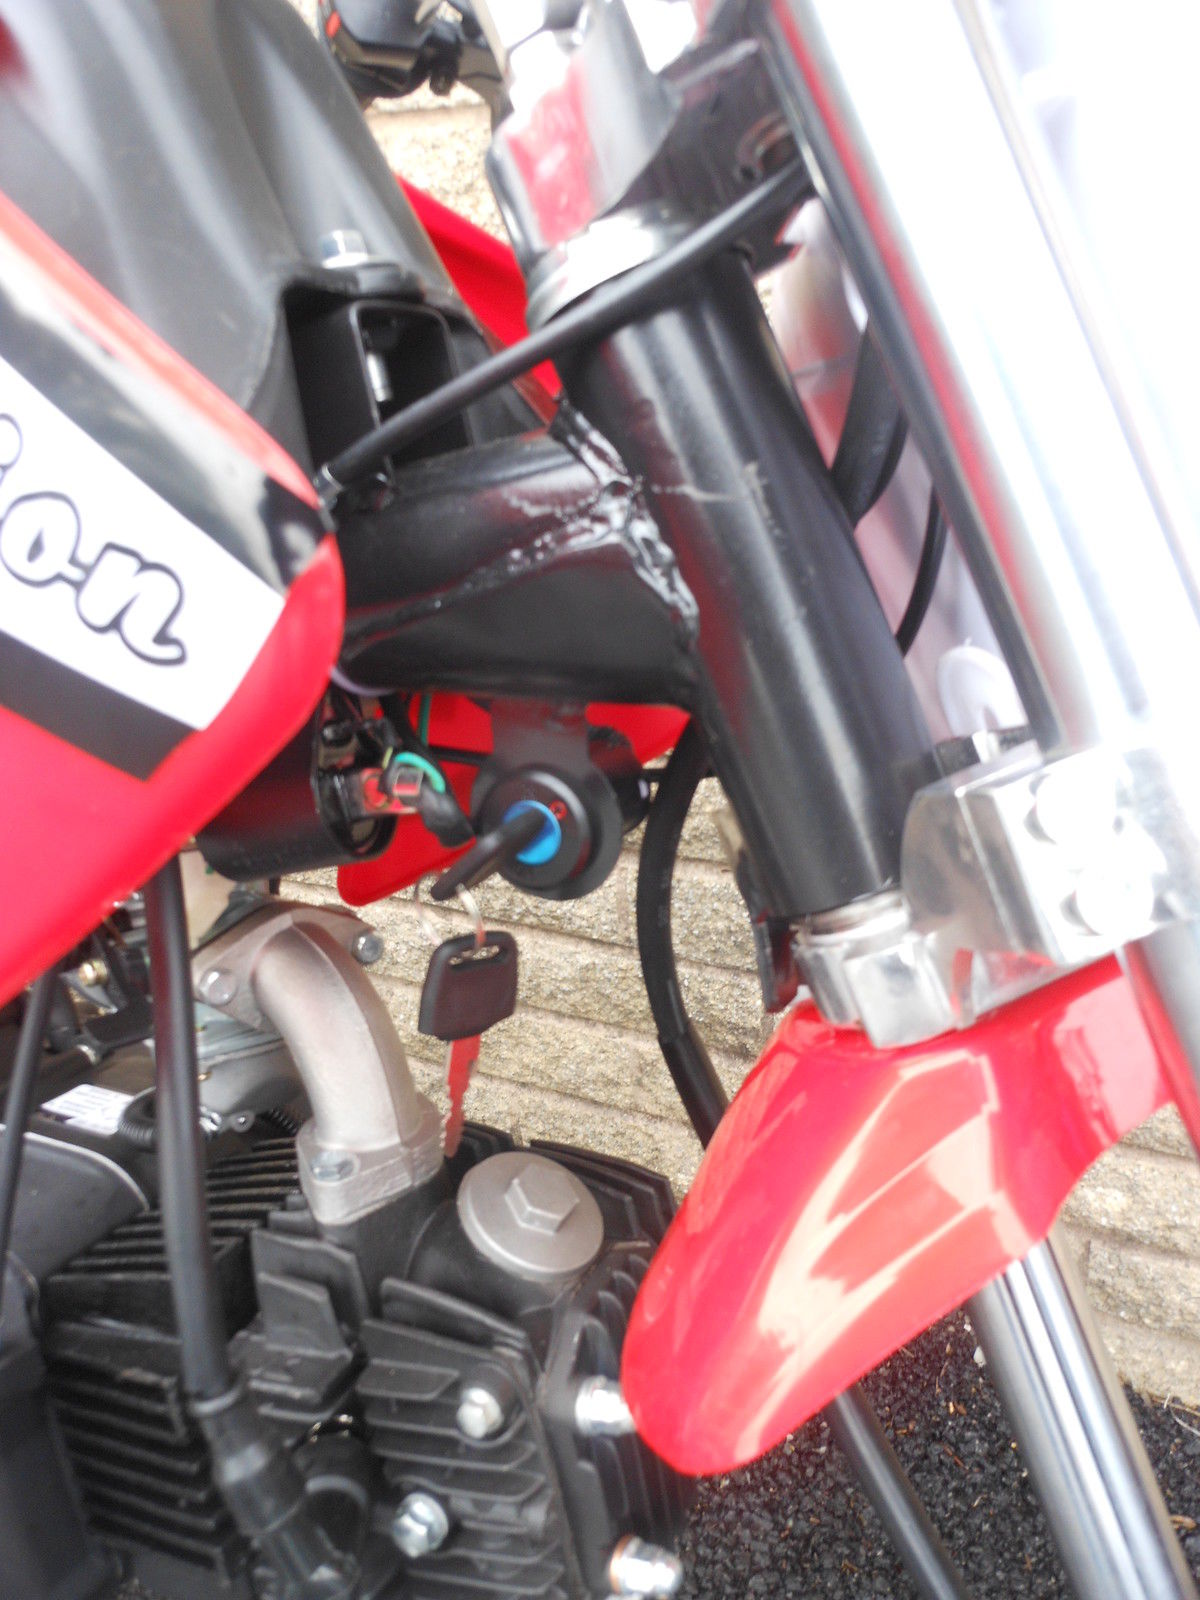 2014 ORION 125cc PIT BIKE IN RED NEW IN BOX